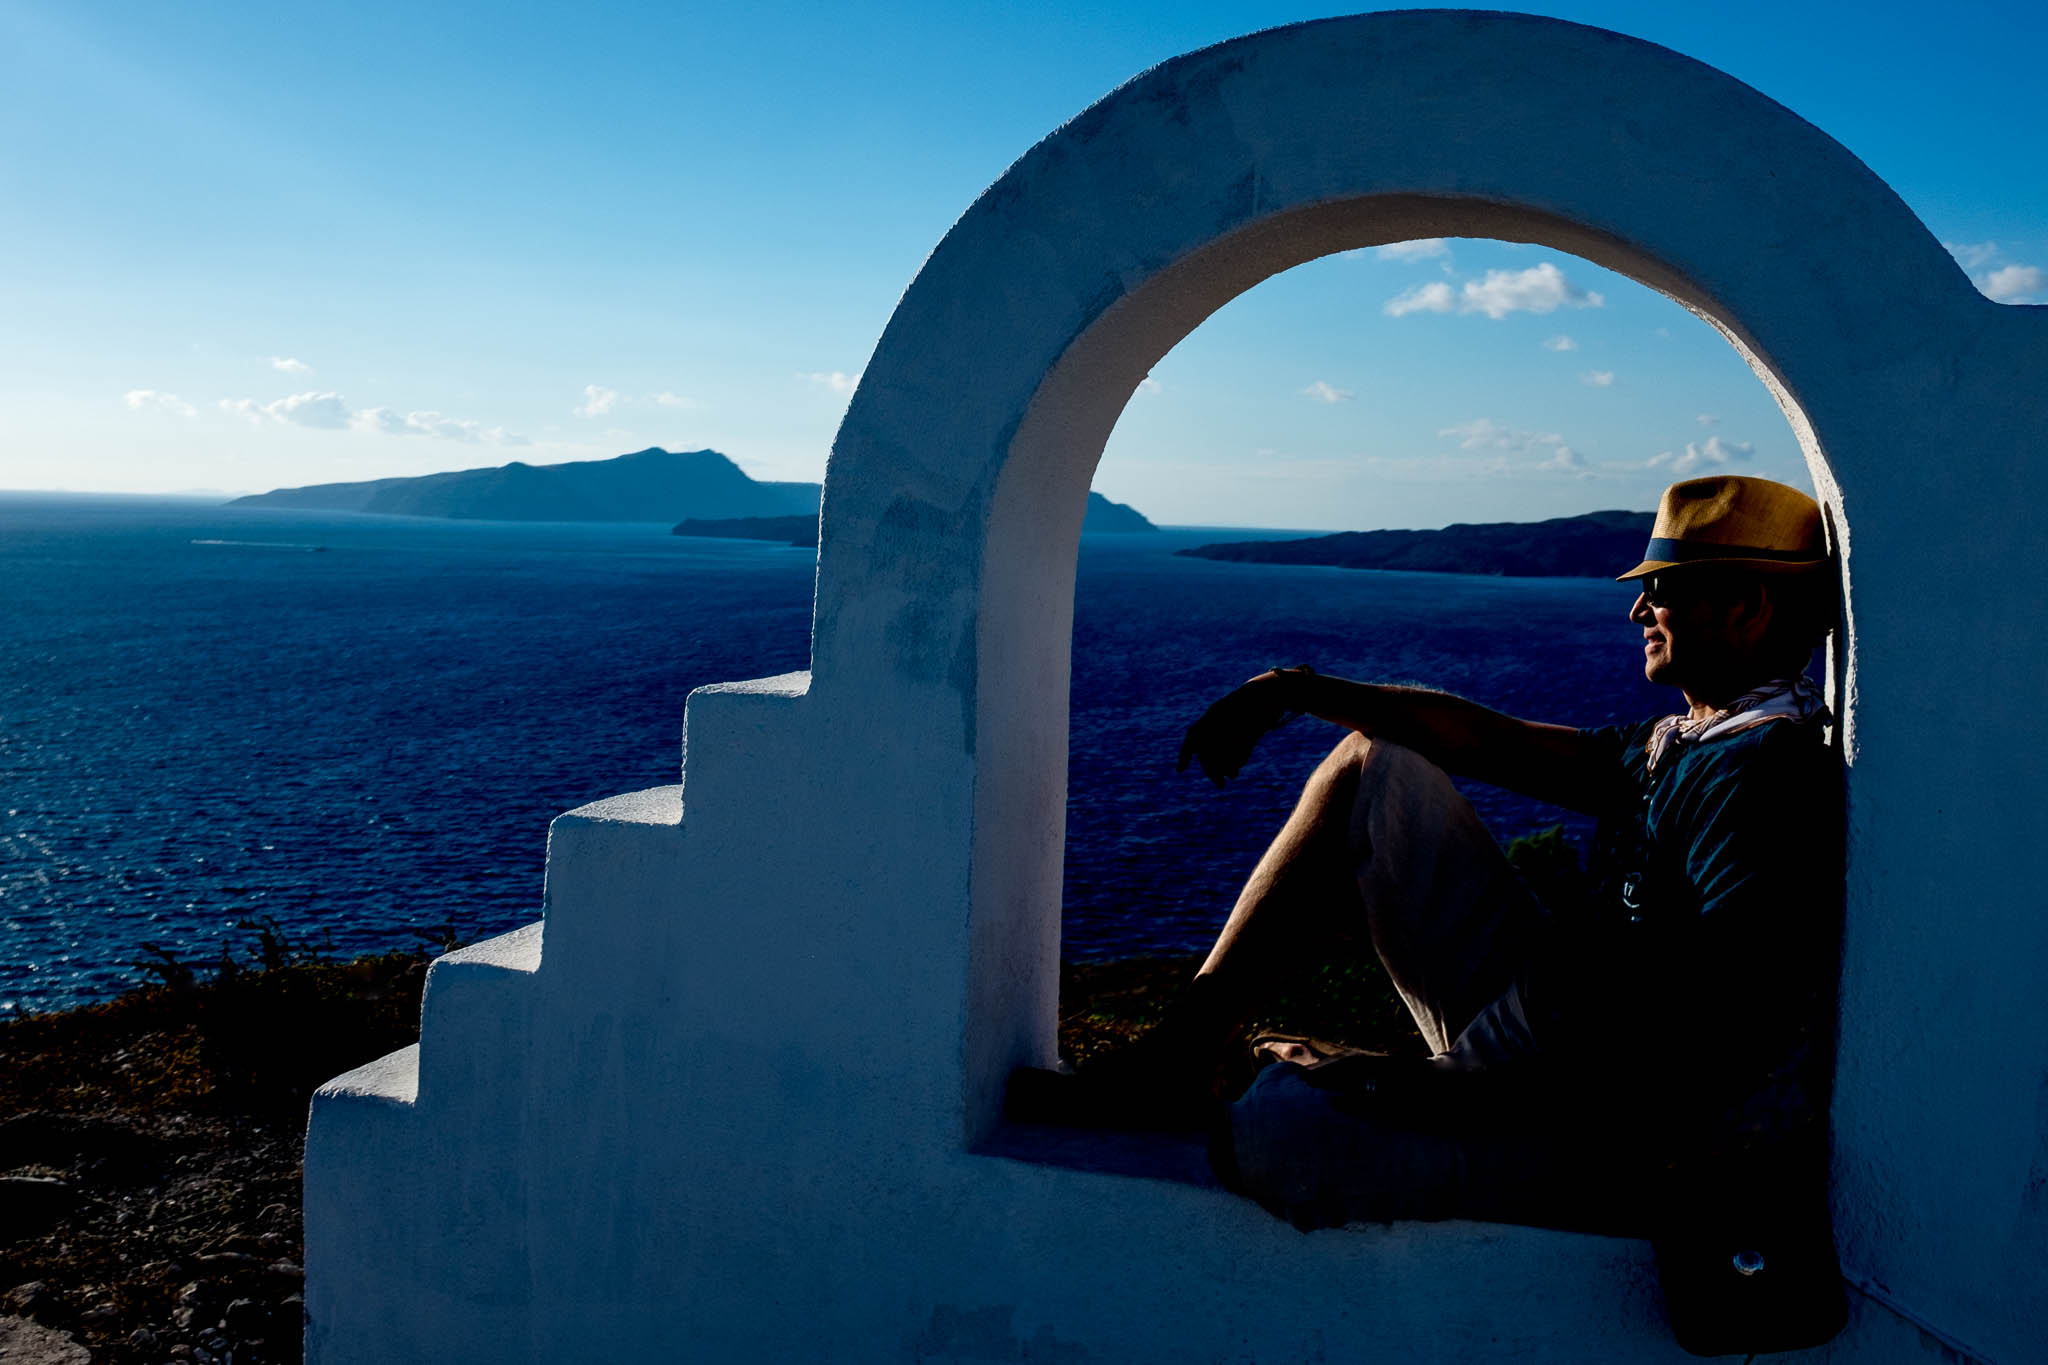 Santorini Greece lookout point over ocean